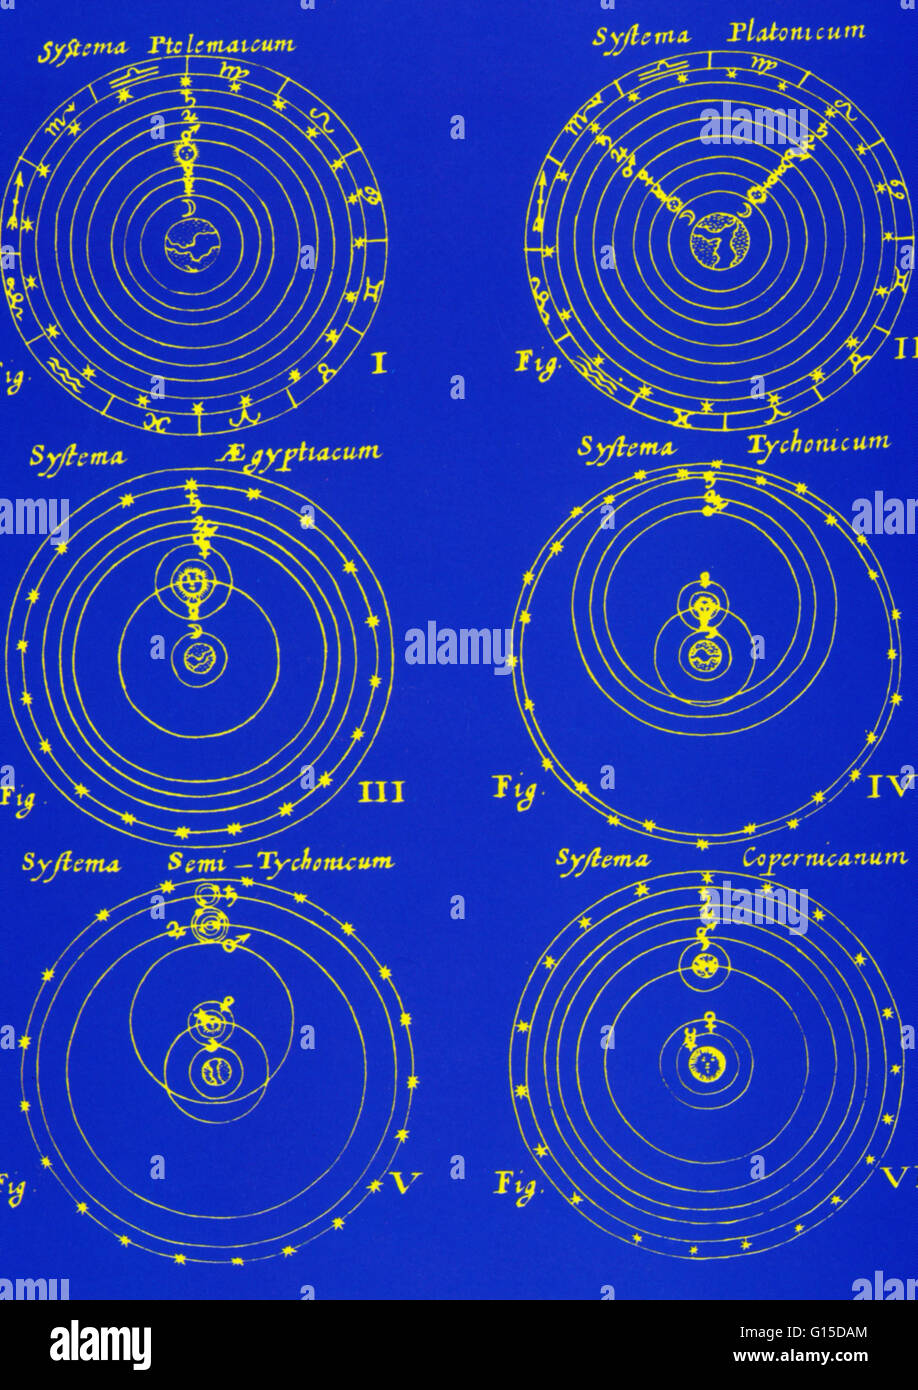 Different cosmological models as conceived by Ptolemy, Plato, the ancient Egyptians, Tycho Brahe and Copernicus. - Stock Image